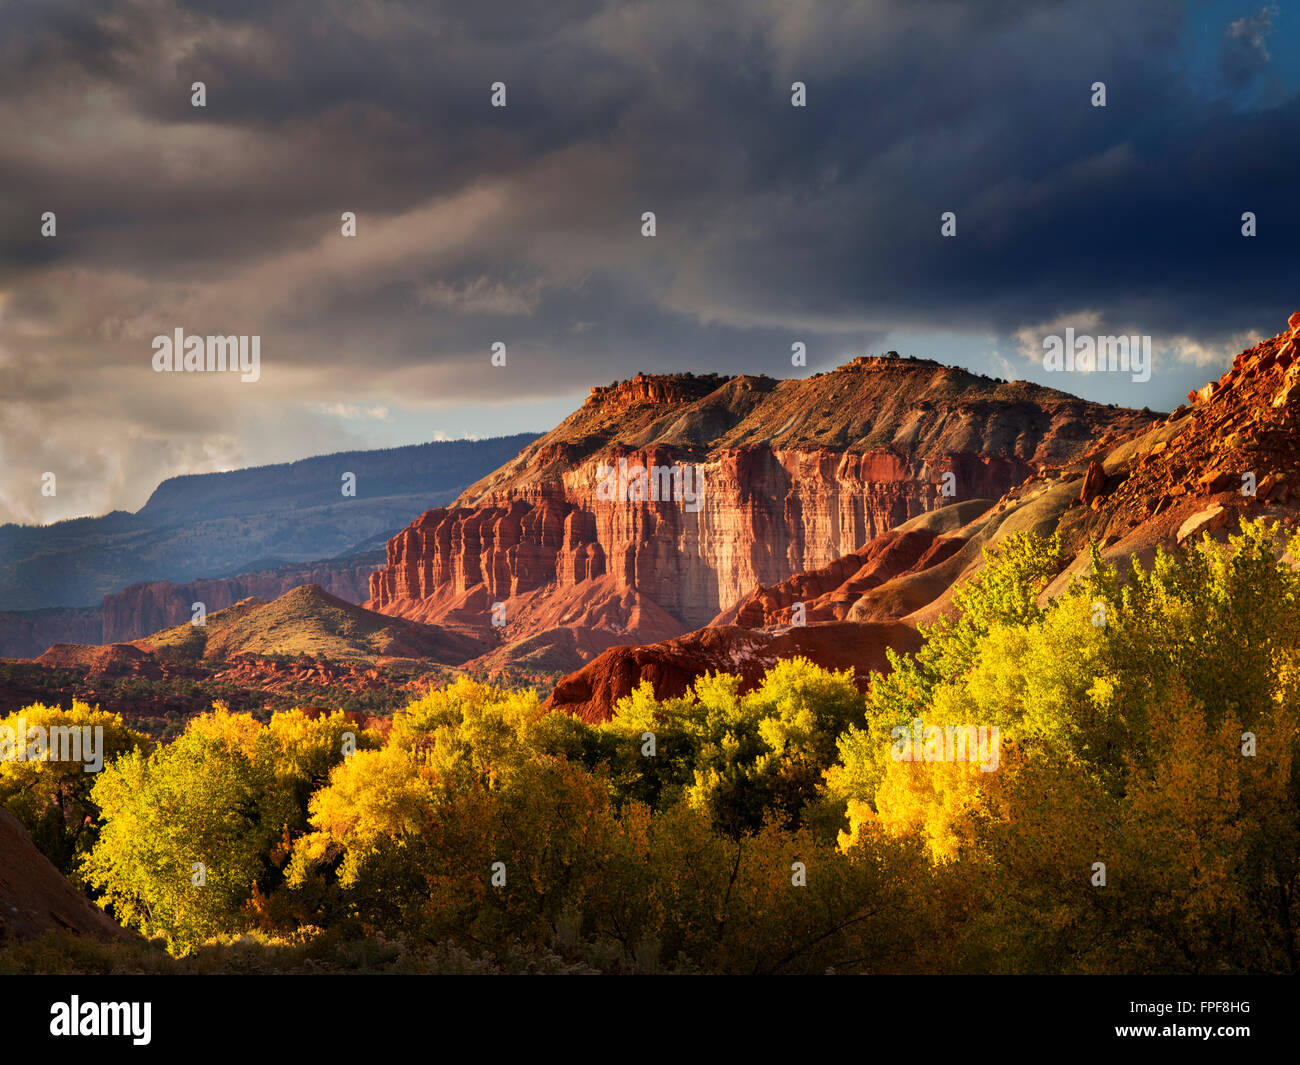 Fall colored Cottonwood Trees and rock formations with storm clouds. Capitol Reef National Park, Utah - Stock Image